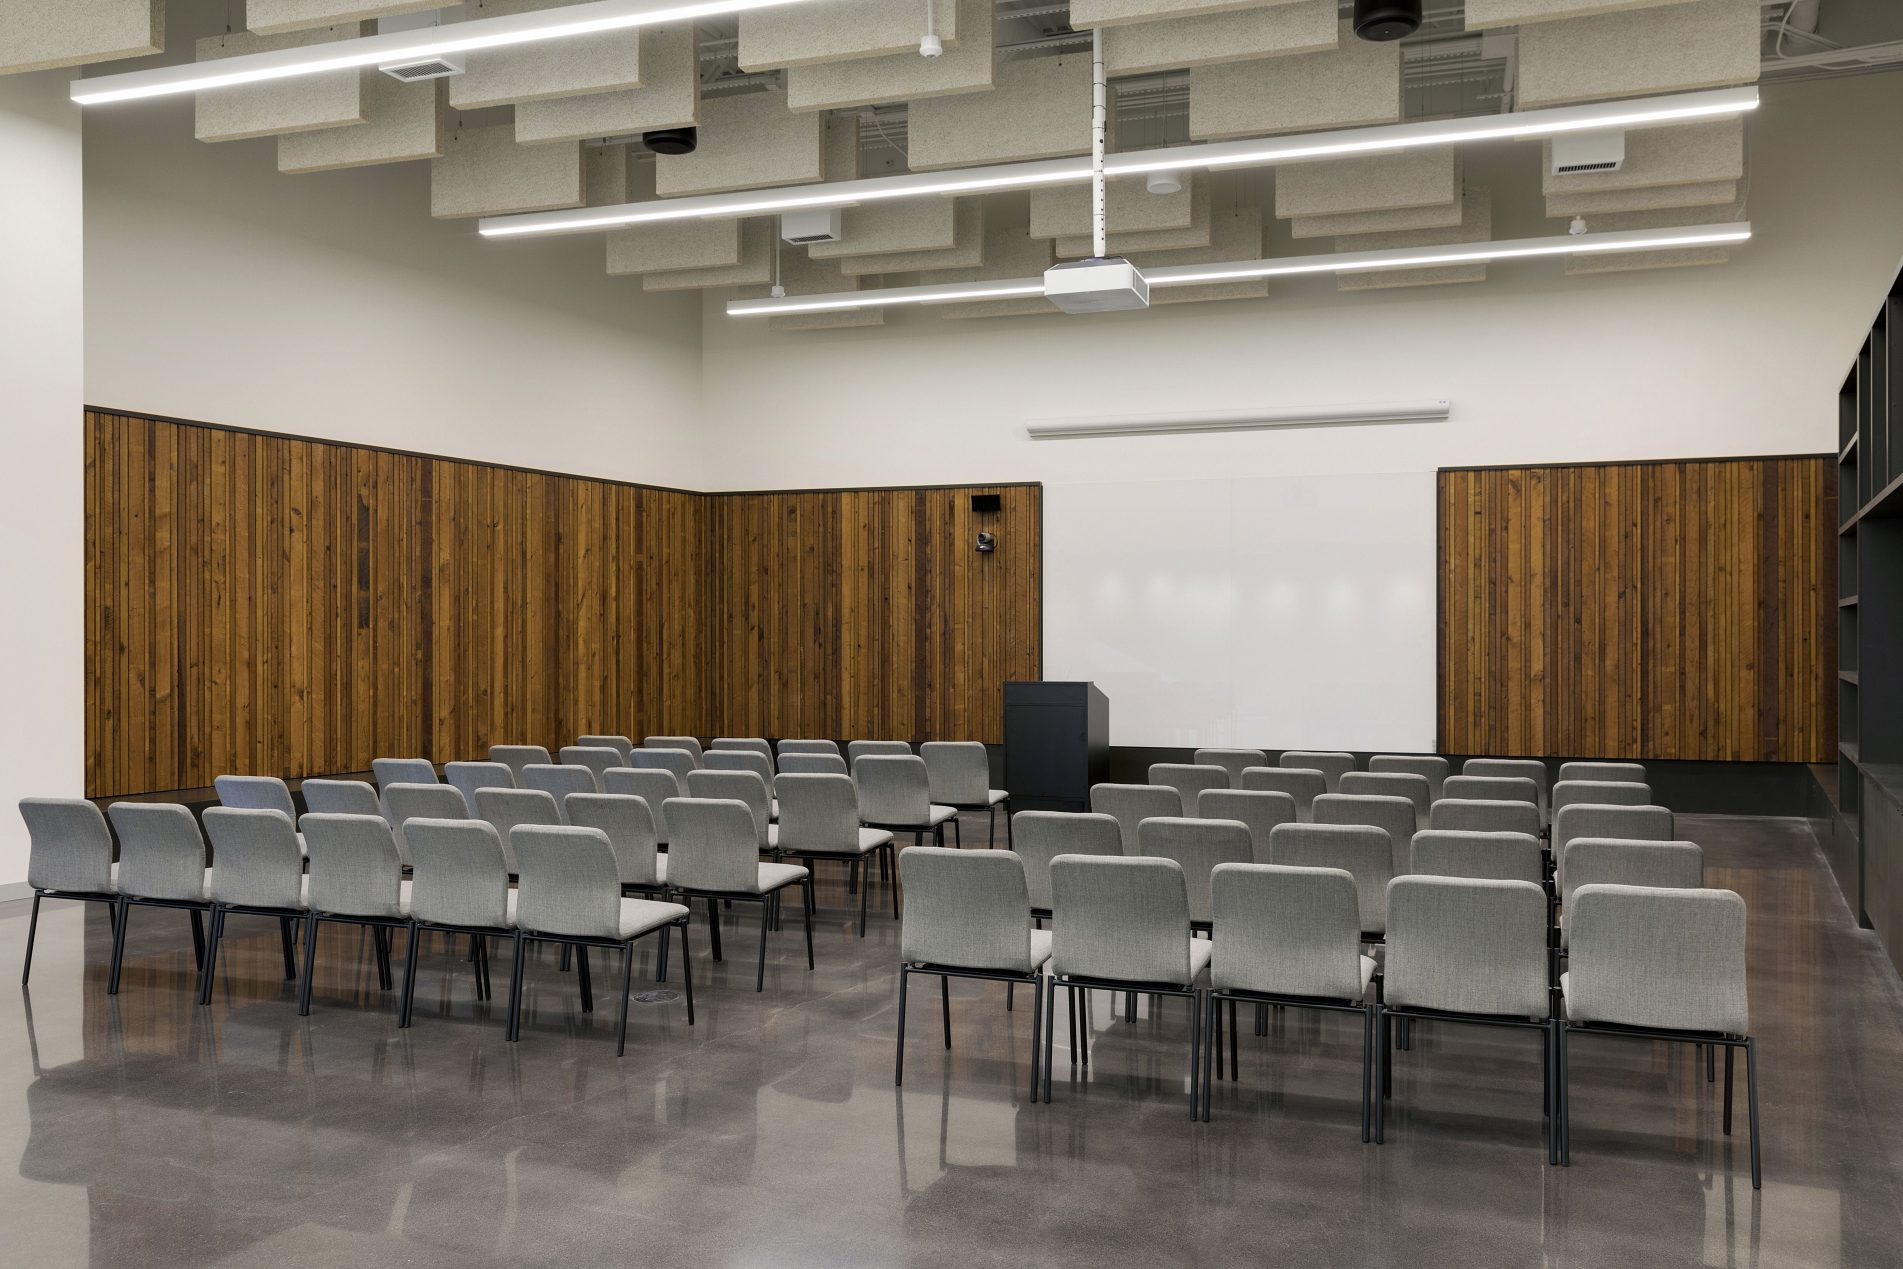 The Nucleus room at the Bell Museum, set up with theater style seating